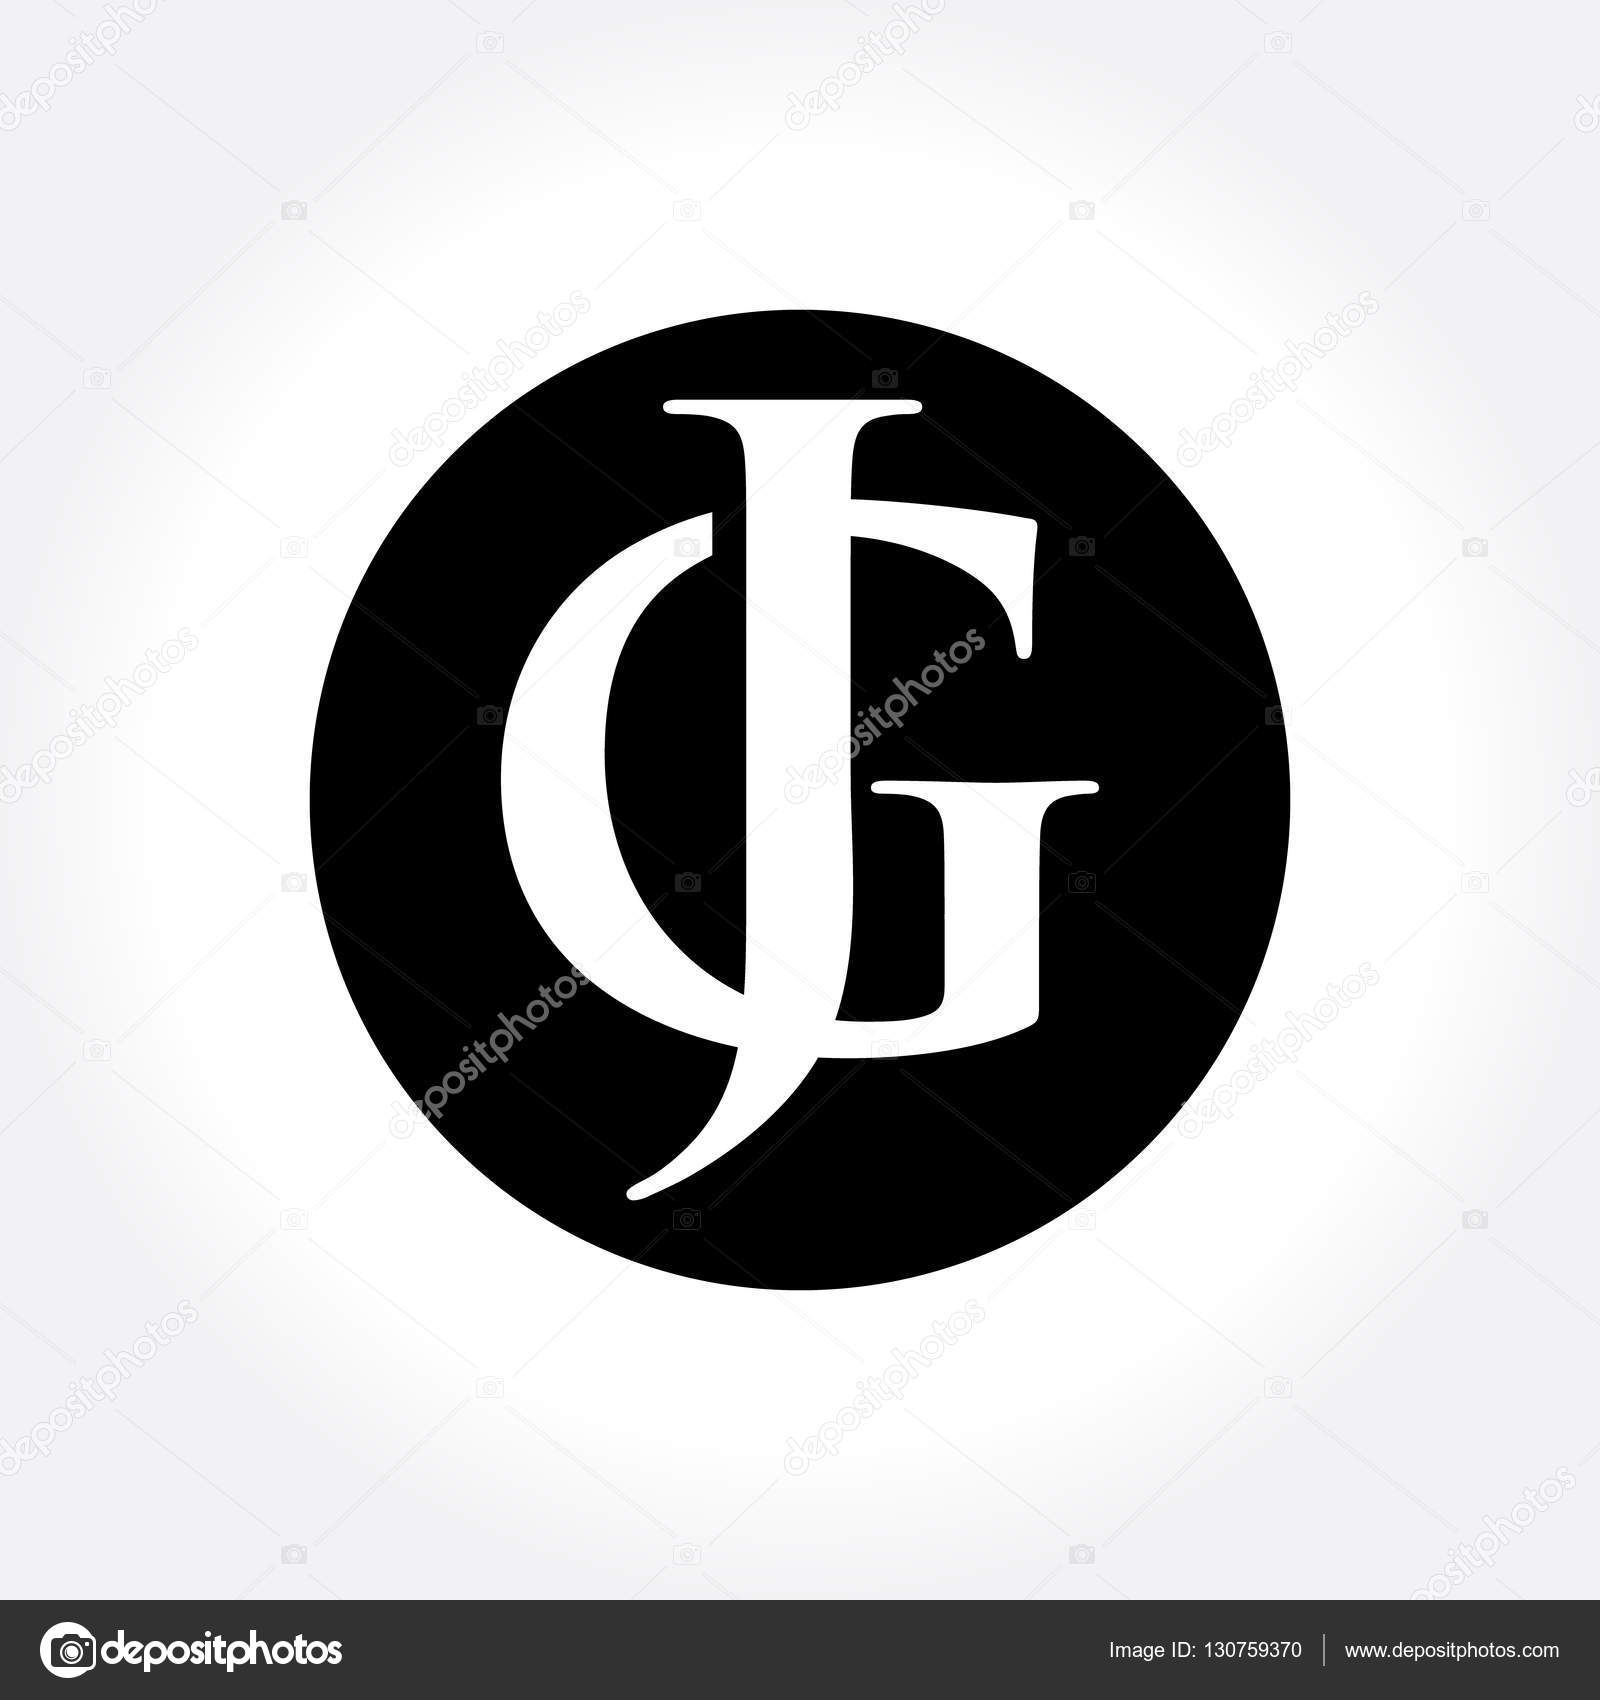 Jg initial letters inside circle monogram logo stock vector a simple symbol for your business that quite unique so it can stand from the crowd easy to implement in future needs vector by srirejeki biocorpaavc